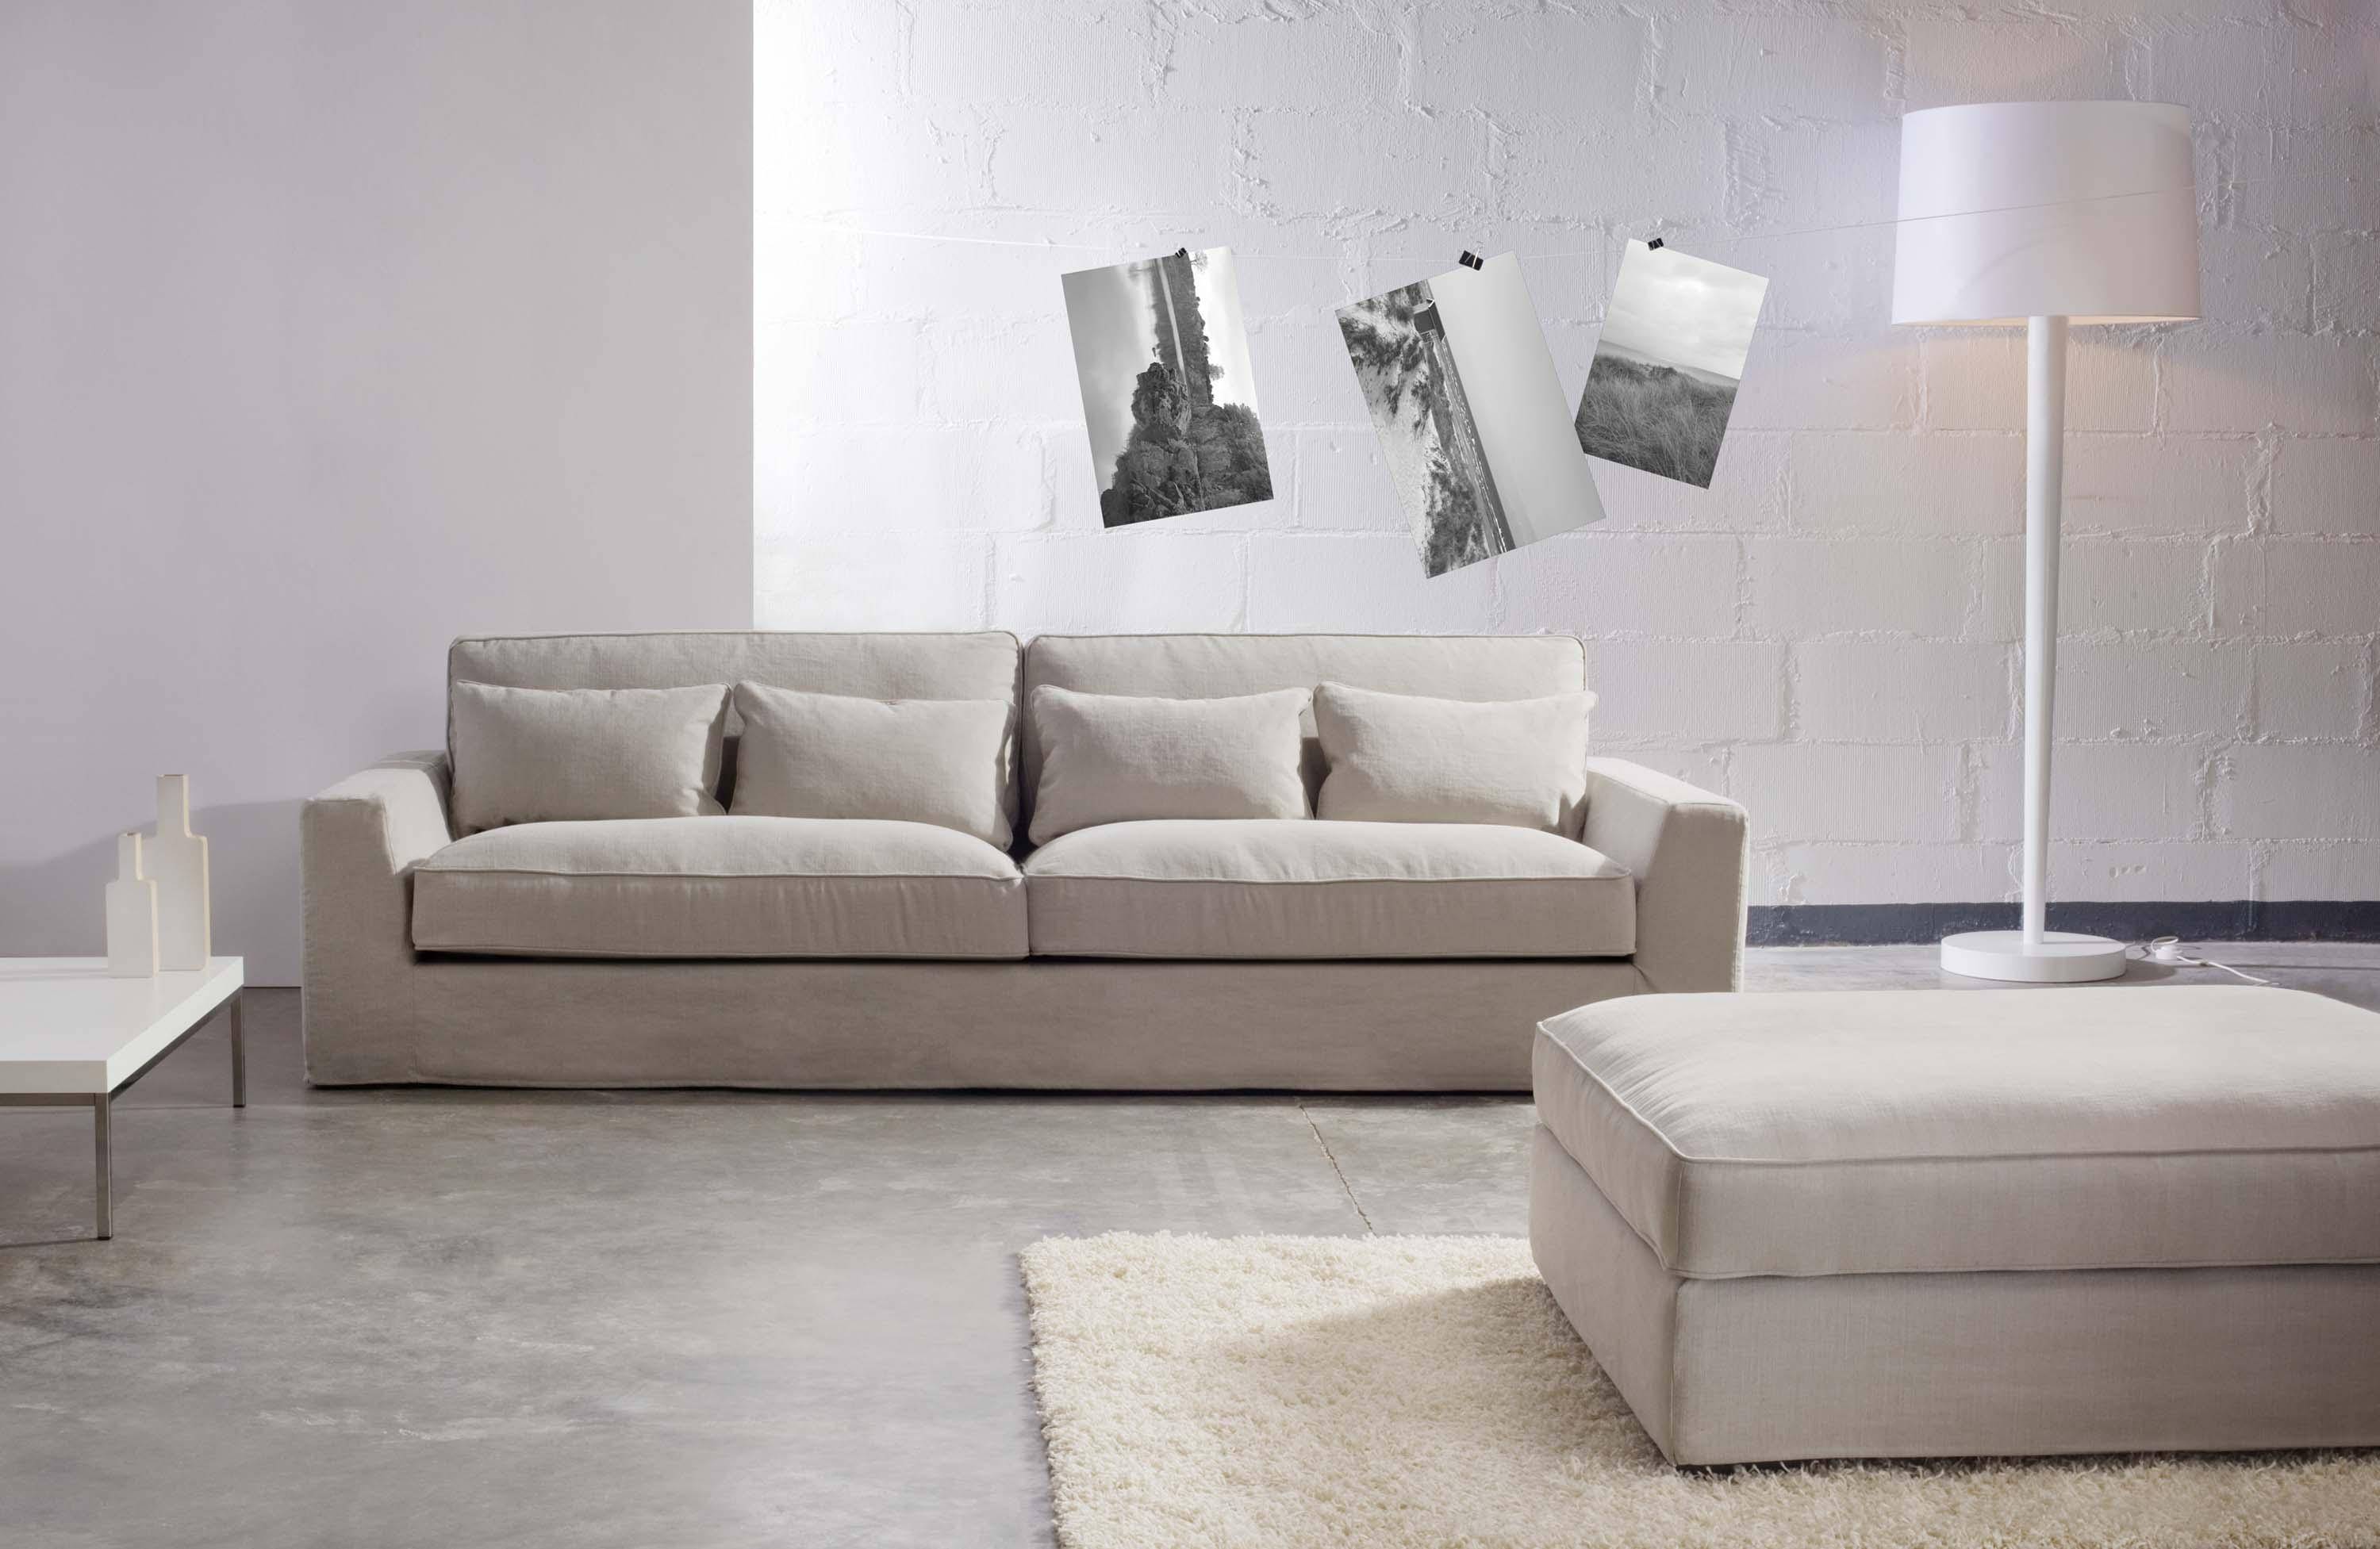 New york lounge sofas from sits architonic for Sofa new york